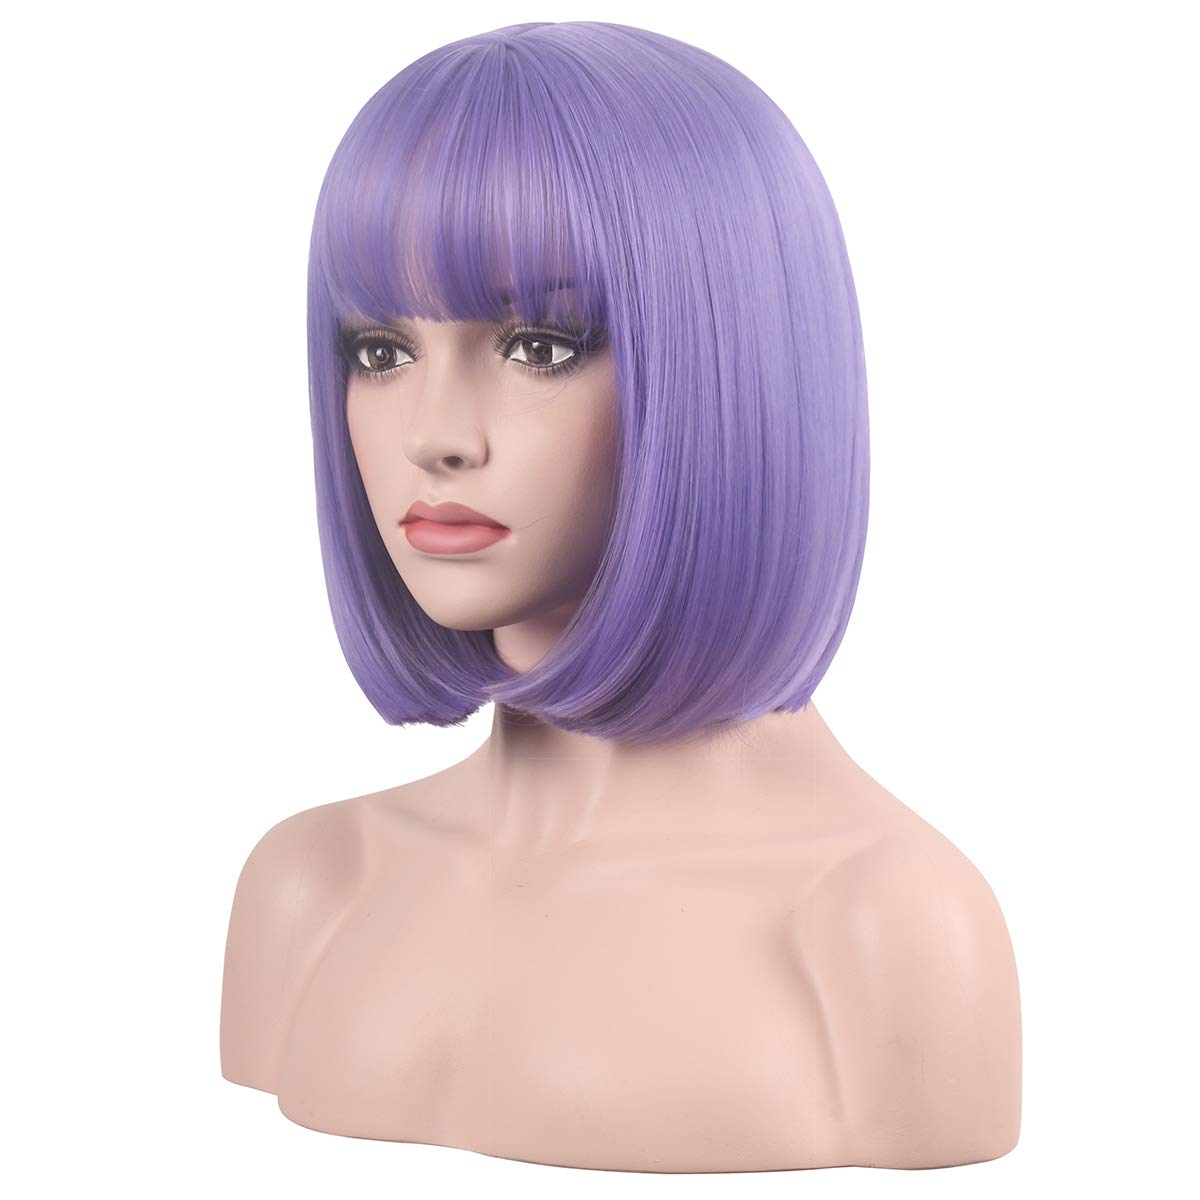 wildcos Short 14 Inches Straight Synthetic Cosplay Wig for Women (purple)